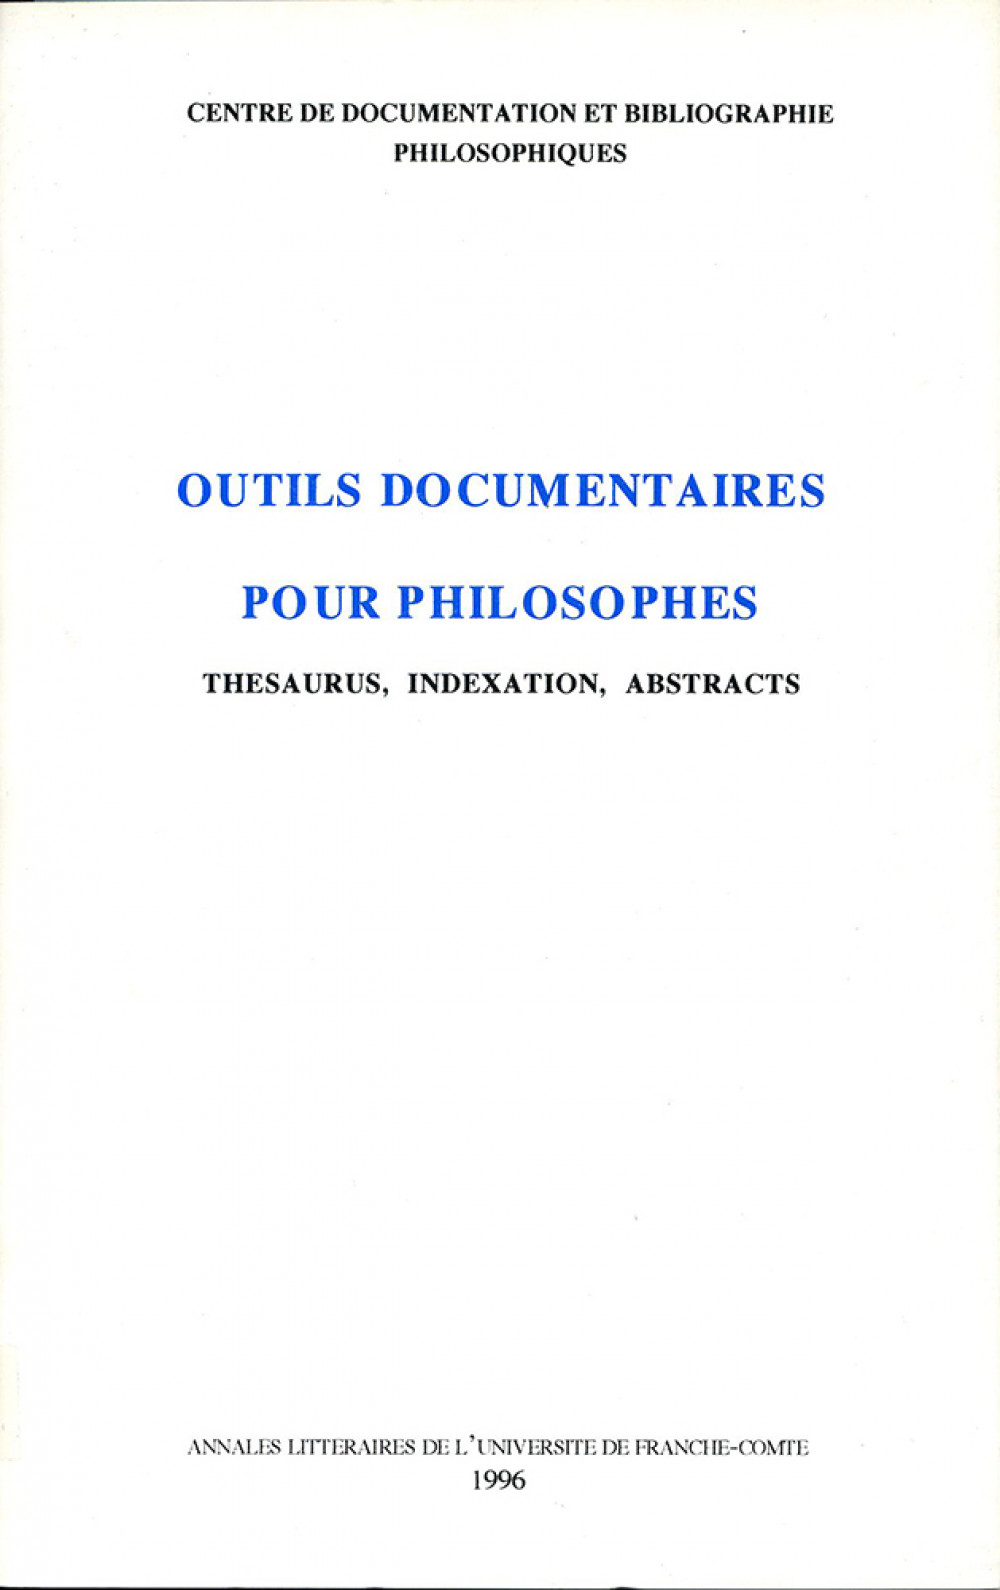 Outils documentaires pour philosophes